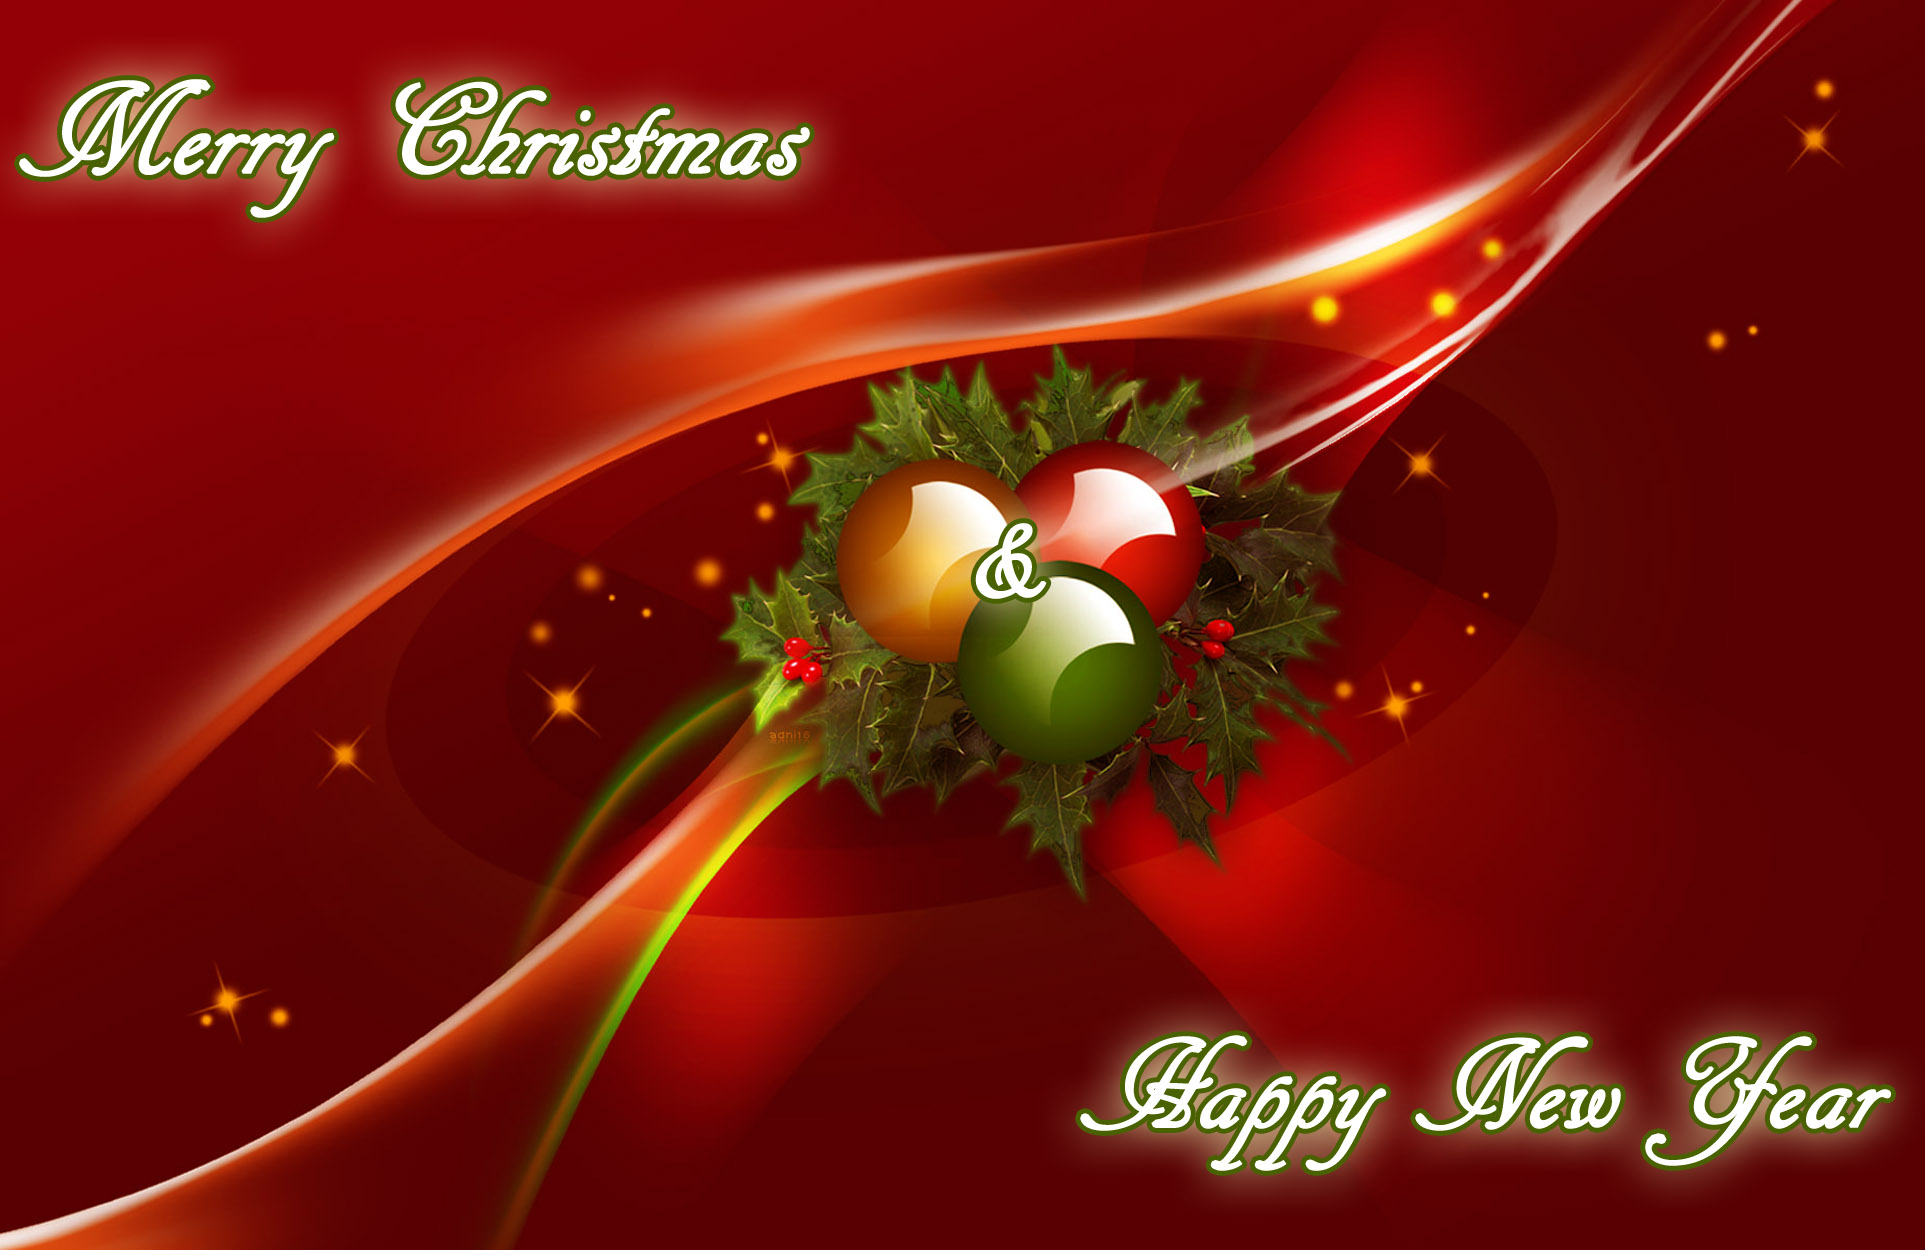 New year 2014 christmas 2013 greeting cards e cards wallpapers new year 2014 christmas 2013 wallpaper greeting cards new m4hsunfo